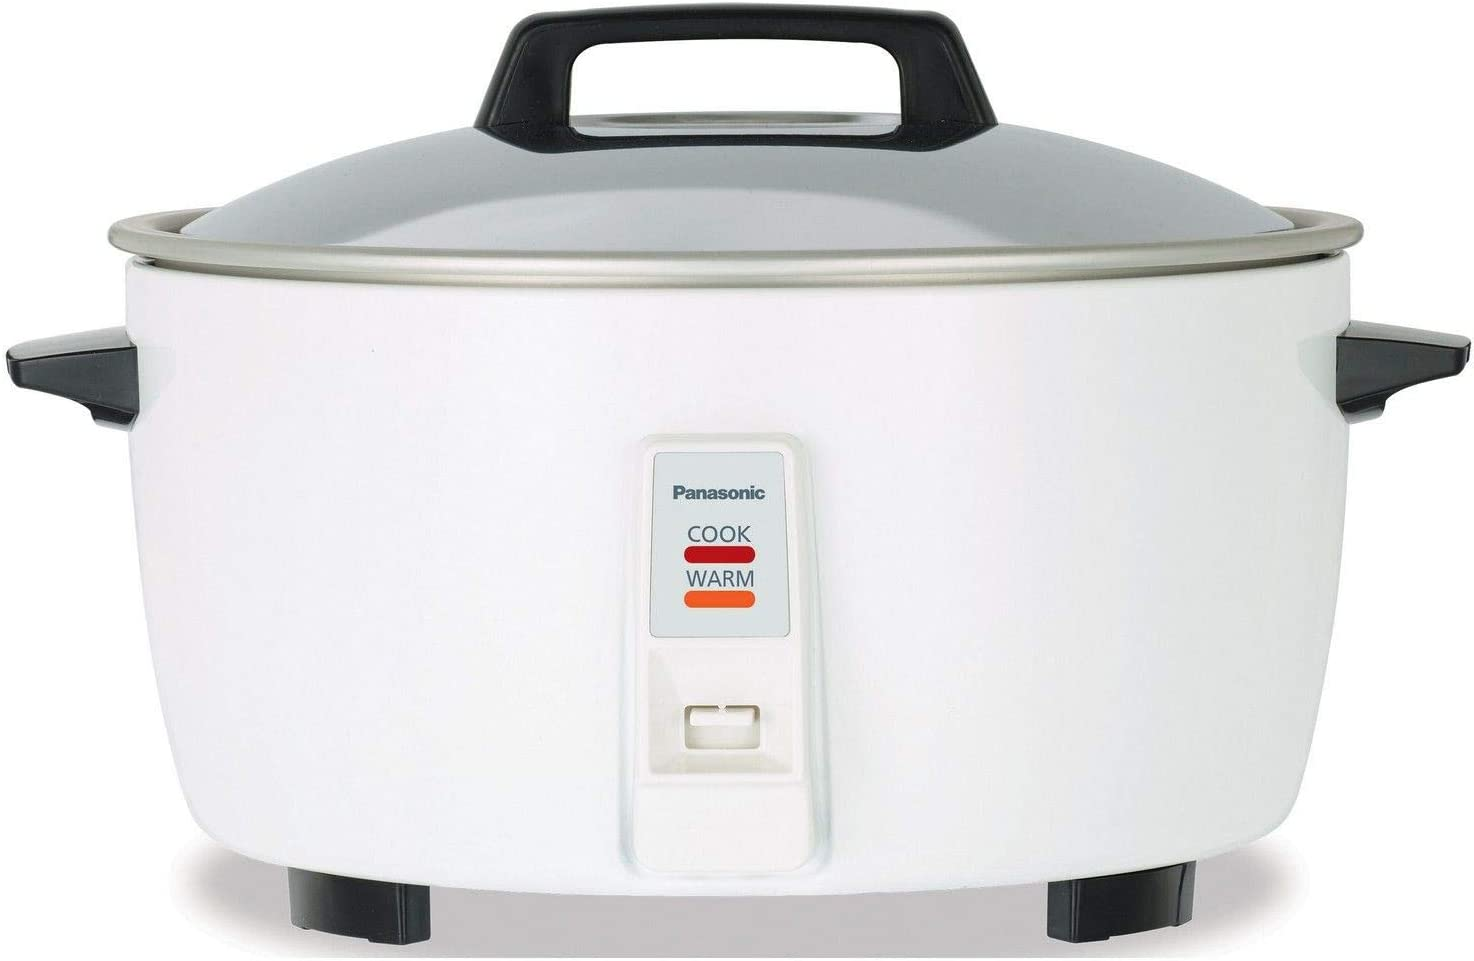 Panasonic SR-932WSN 3.2L Conventional Automatic Rice Cooker, 220 Volts (Not for USA - European Cord), White